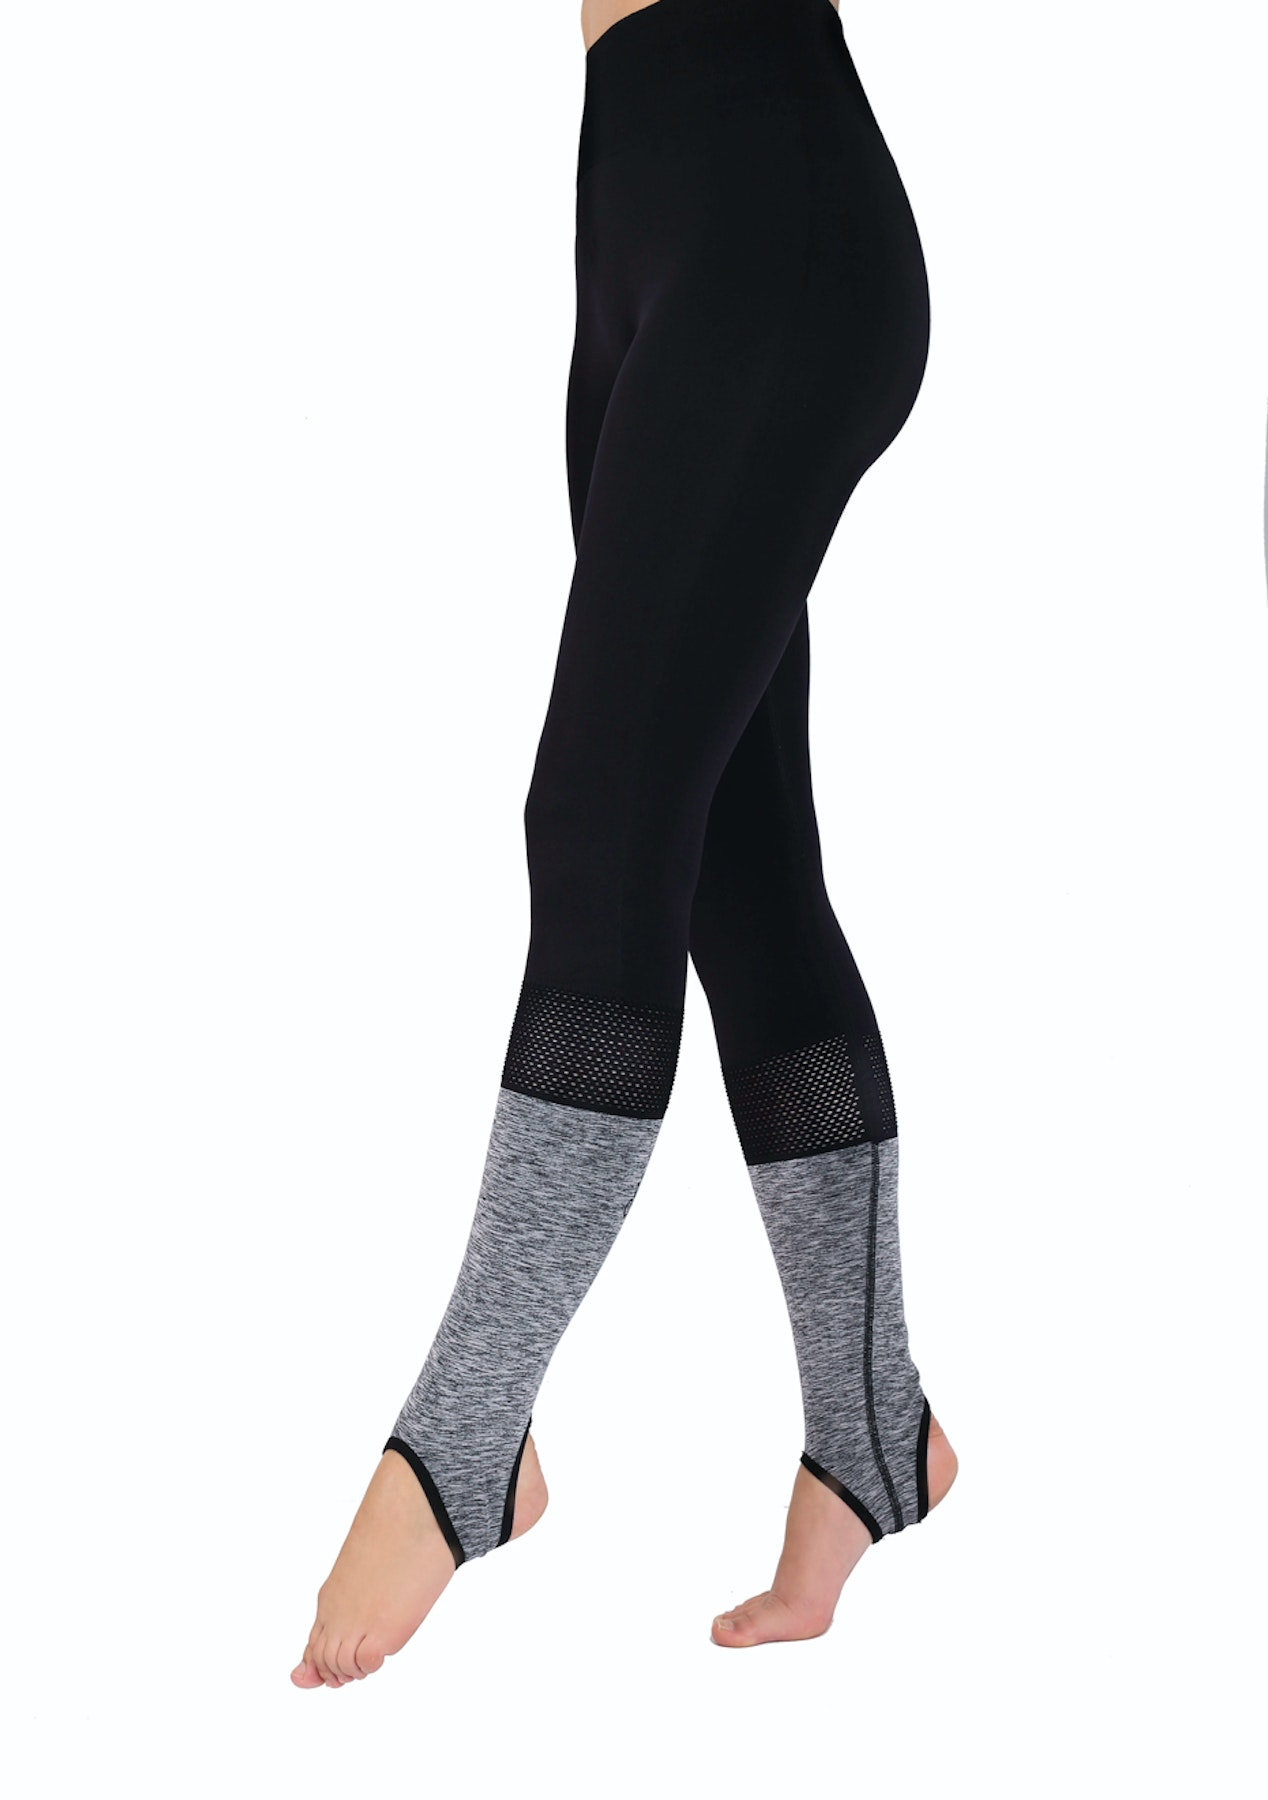 152a8076d232b Kisaiya - Striup Seamless Legging - Black/Grey - From $29.95 Leggings &  More - Onceit